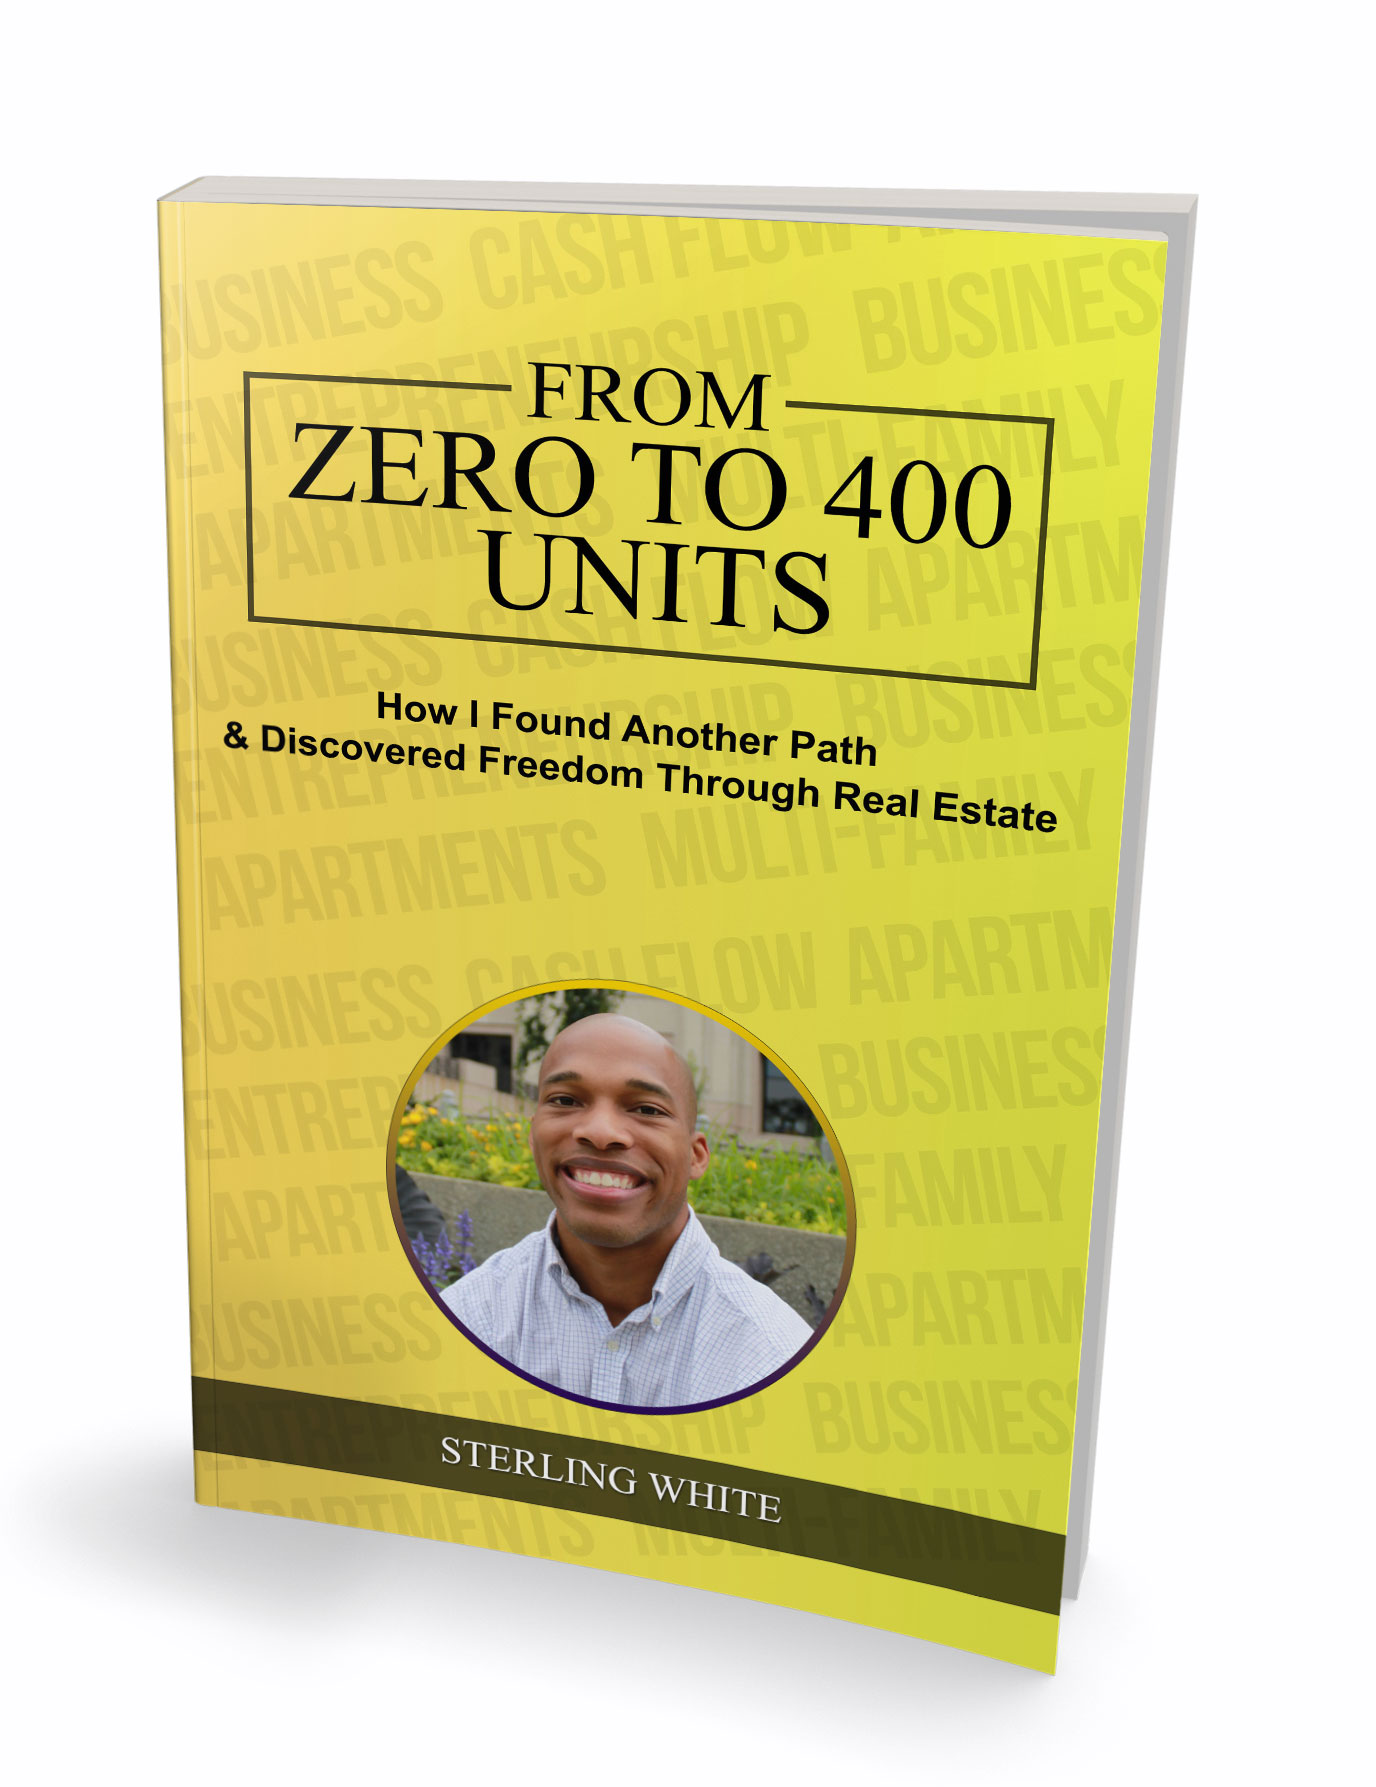 Read my latest book - Personal Journey on going from ZERO to 400 UNITS